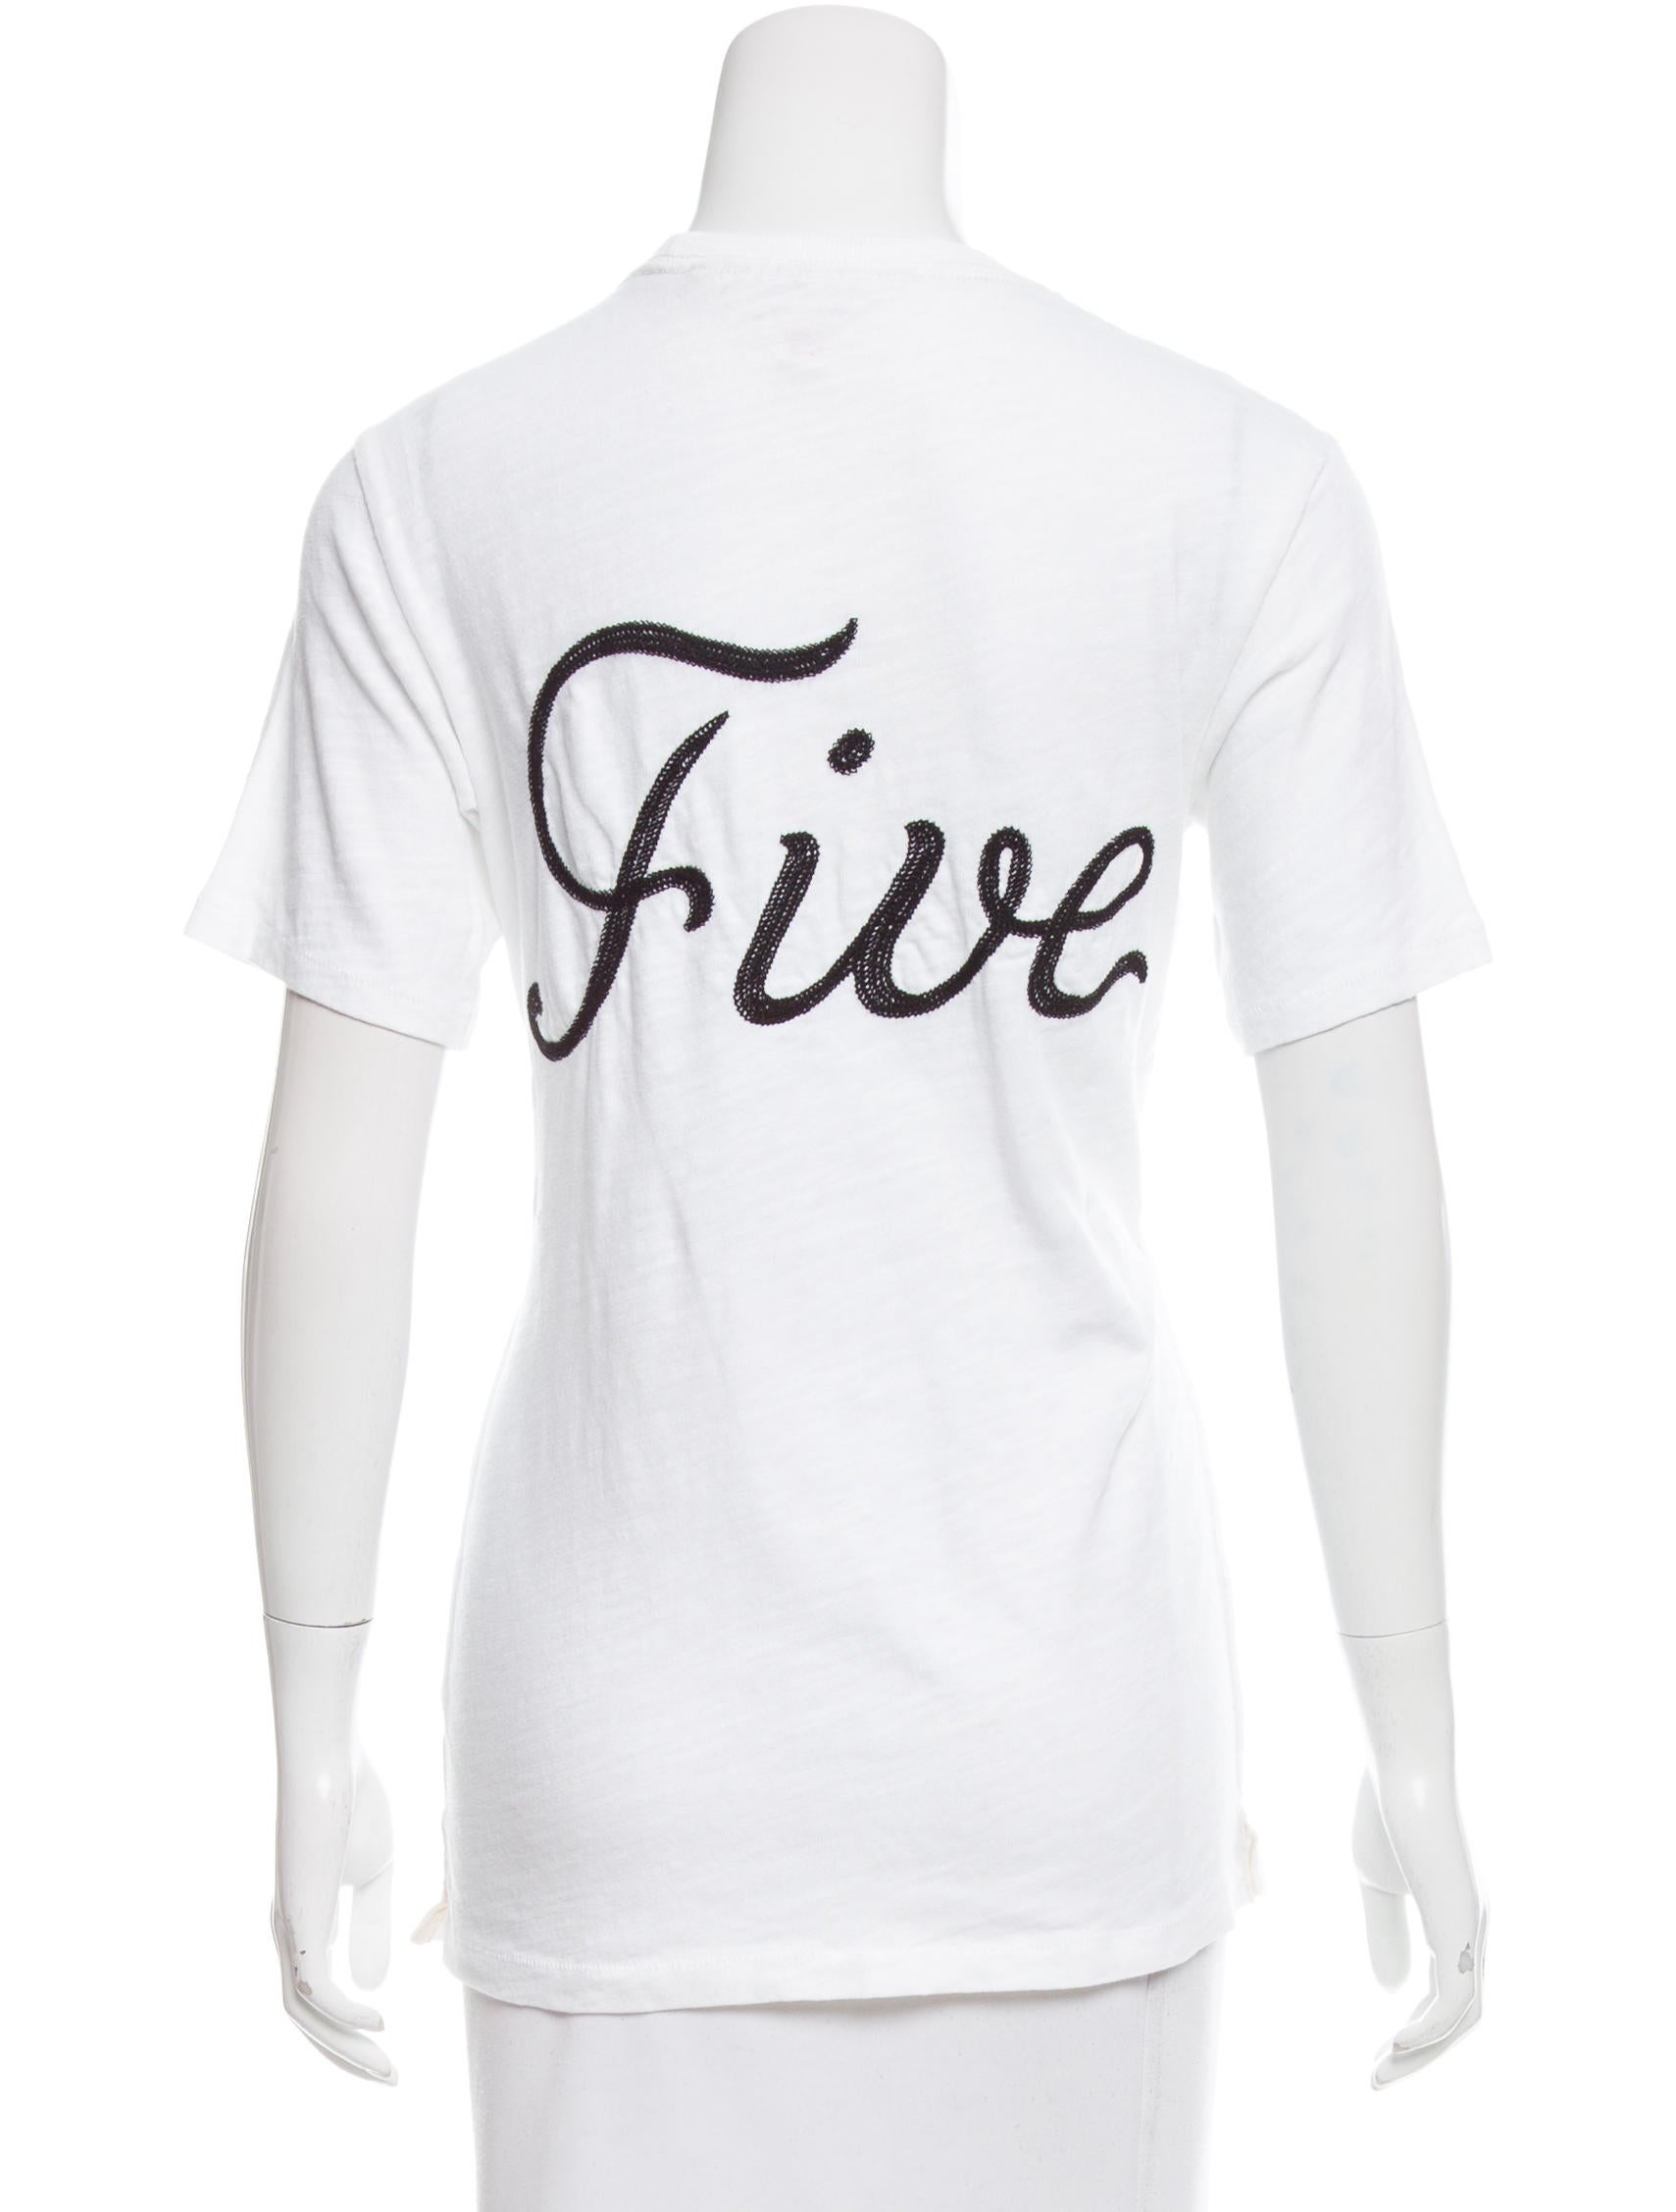 Rag bone embroidered t shirt clothing wragb82975 for Rag and bone t shirts